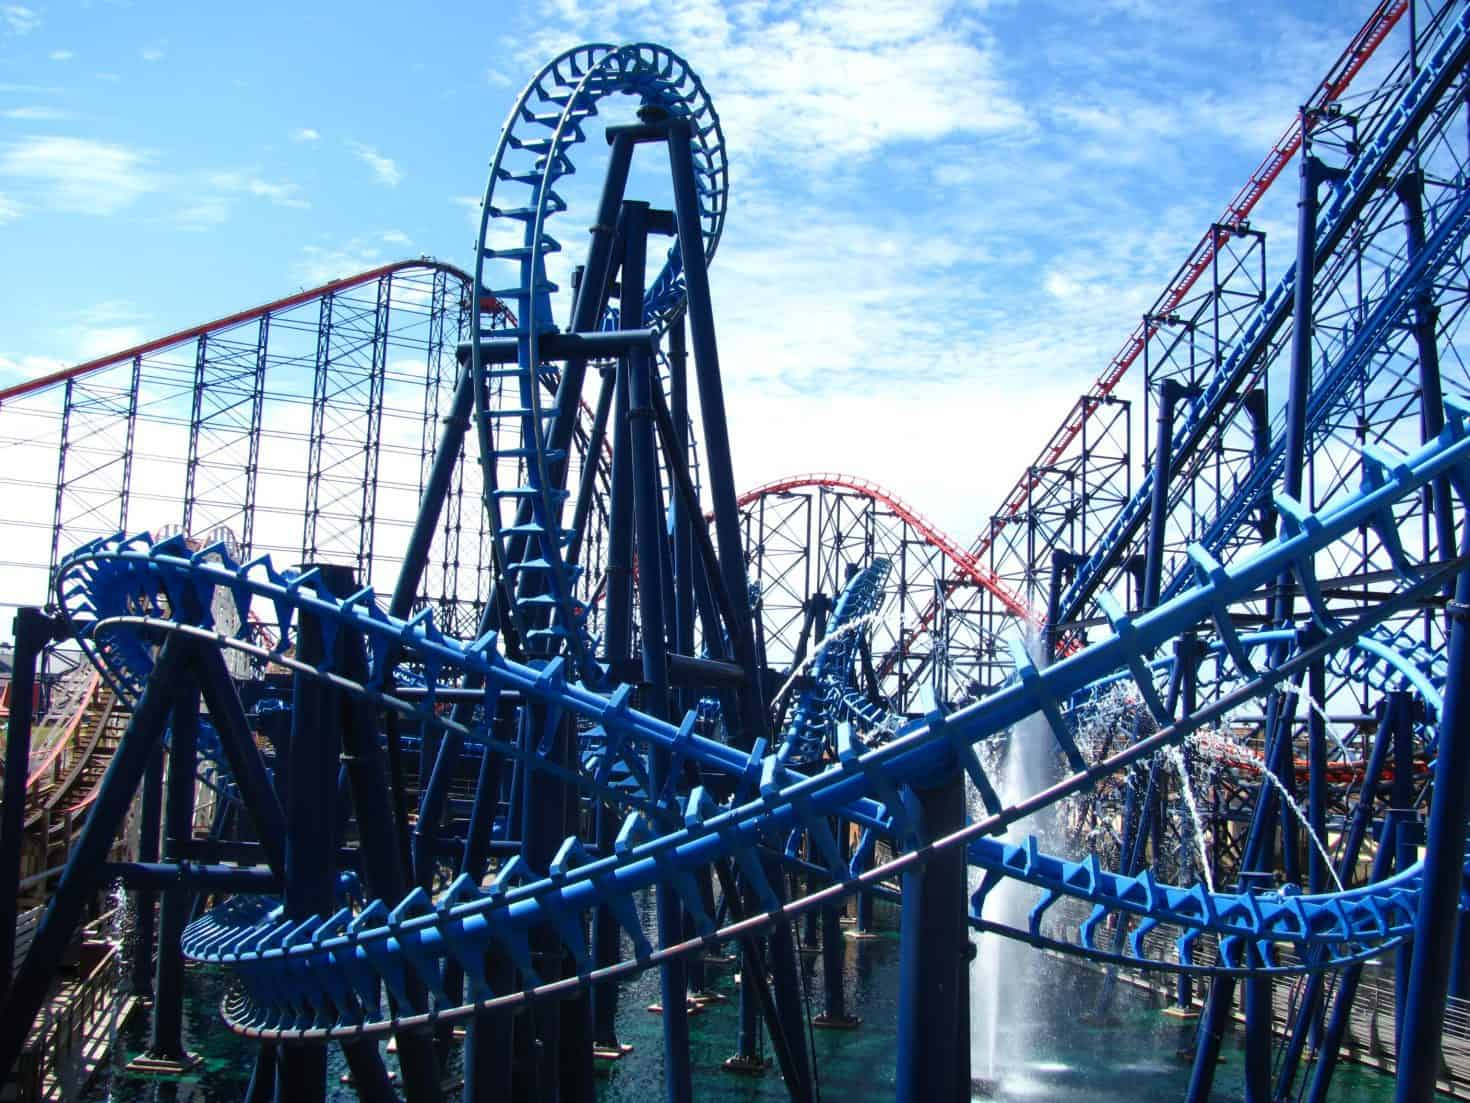 BLACKPOOL PLEASURE BEACH OR ALTON TOWERS… WHICH IS THE BETTER CHOICE